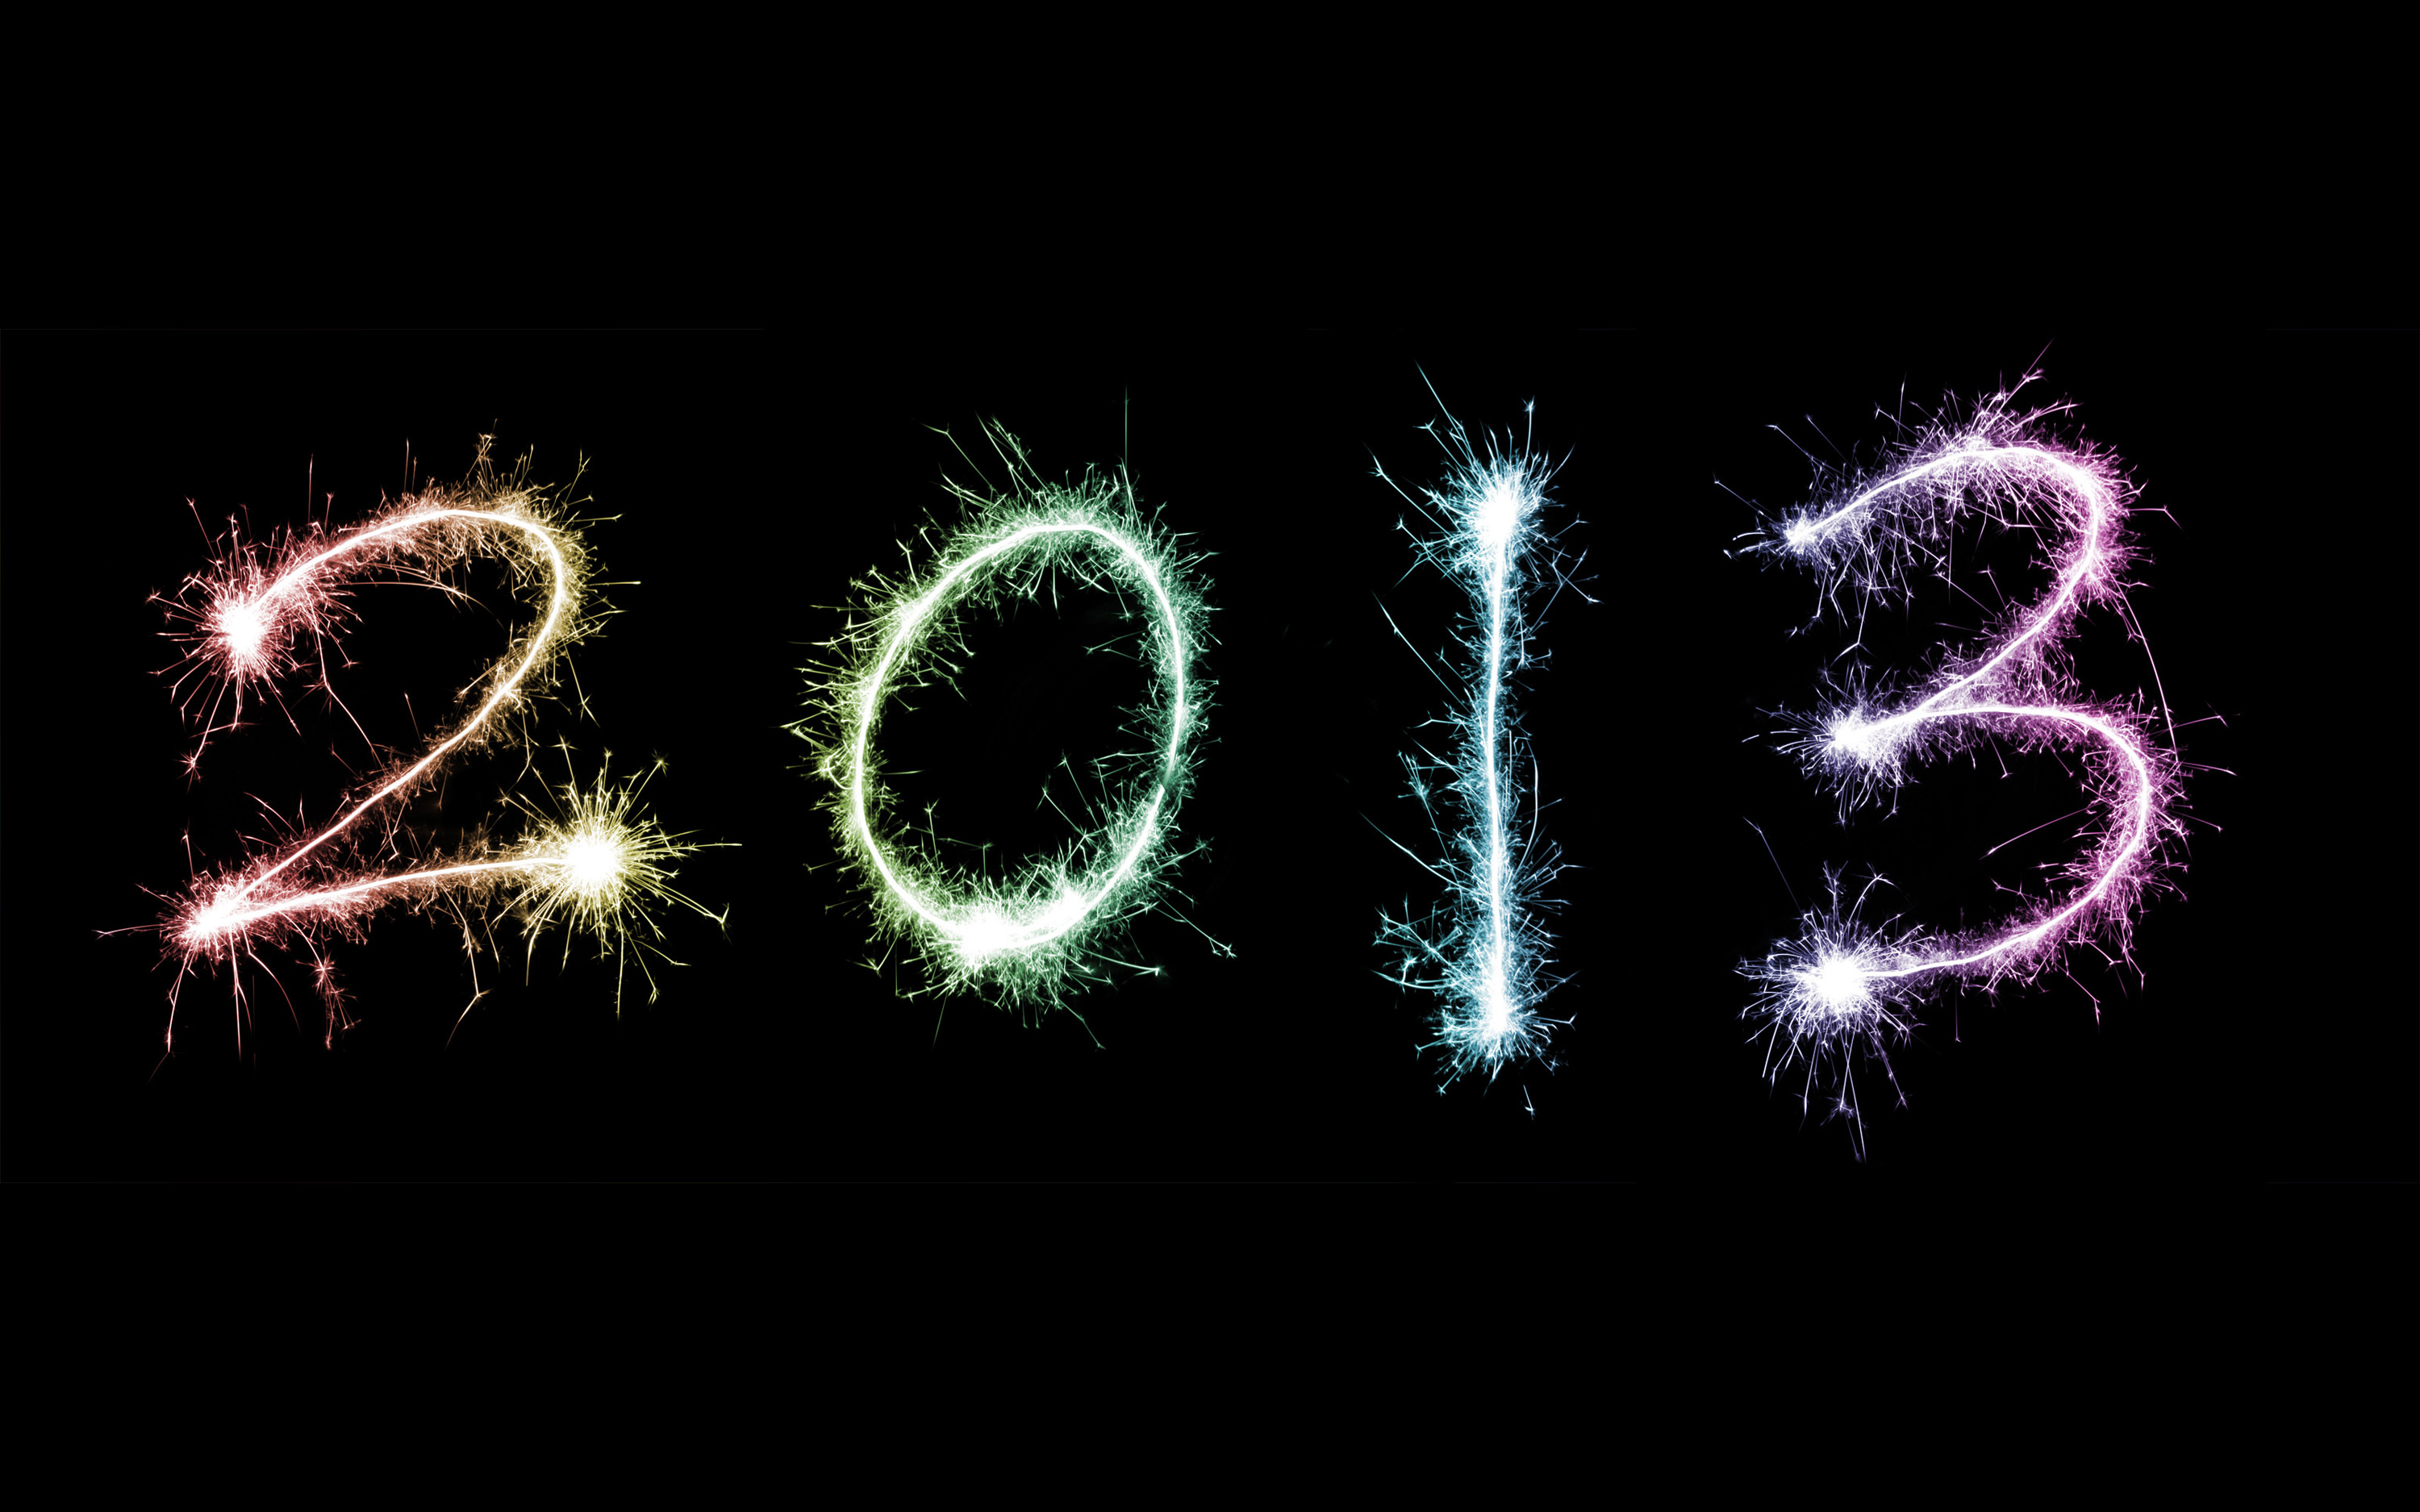 2013 written in colourful fiery sparklers against a black background for your New Year celebration or greeting card